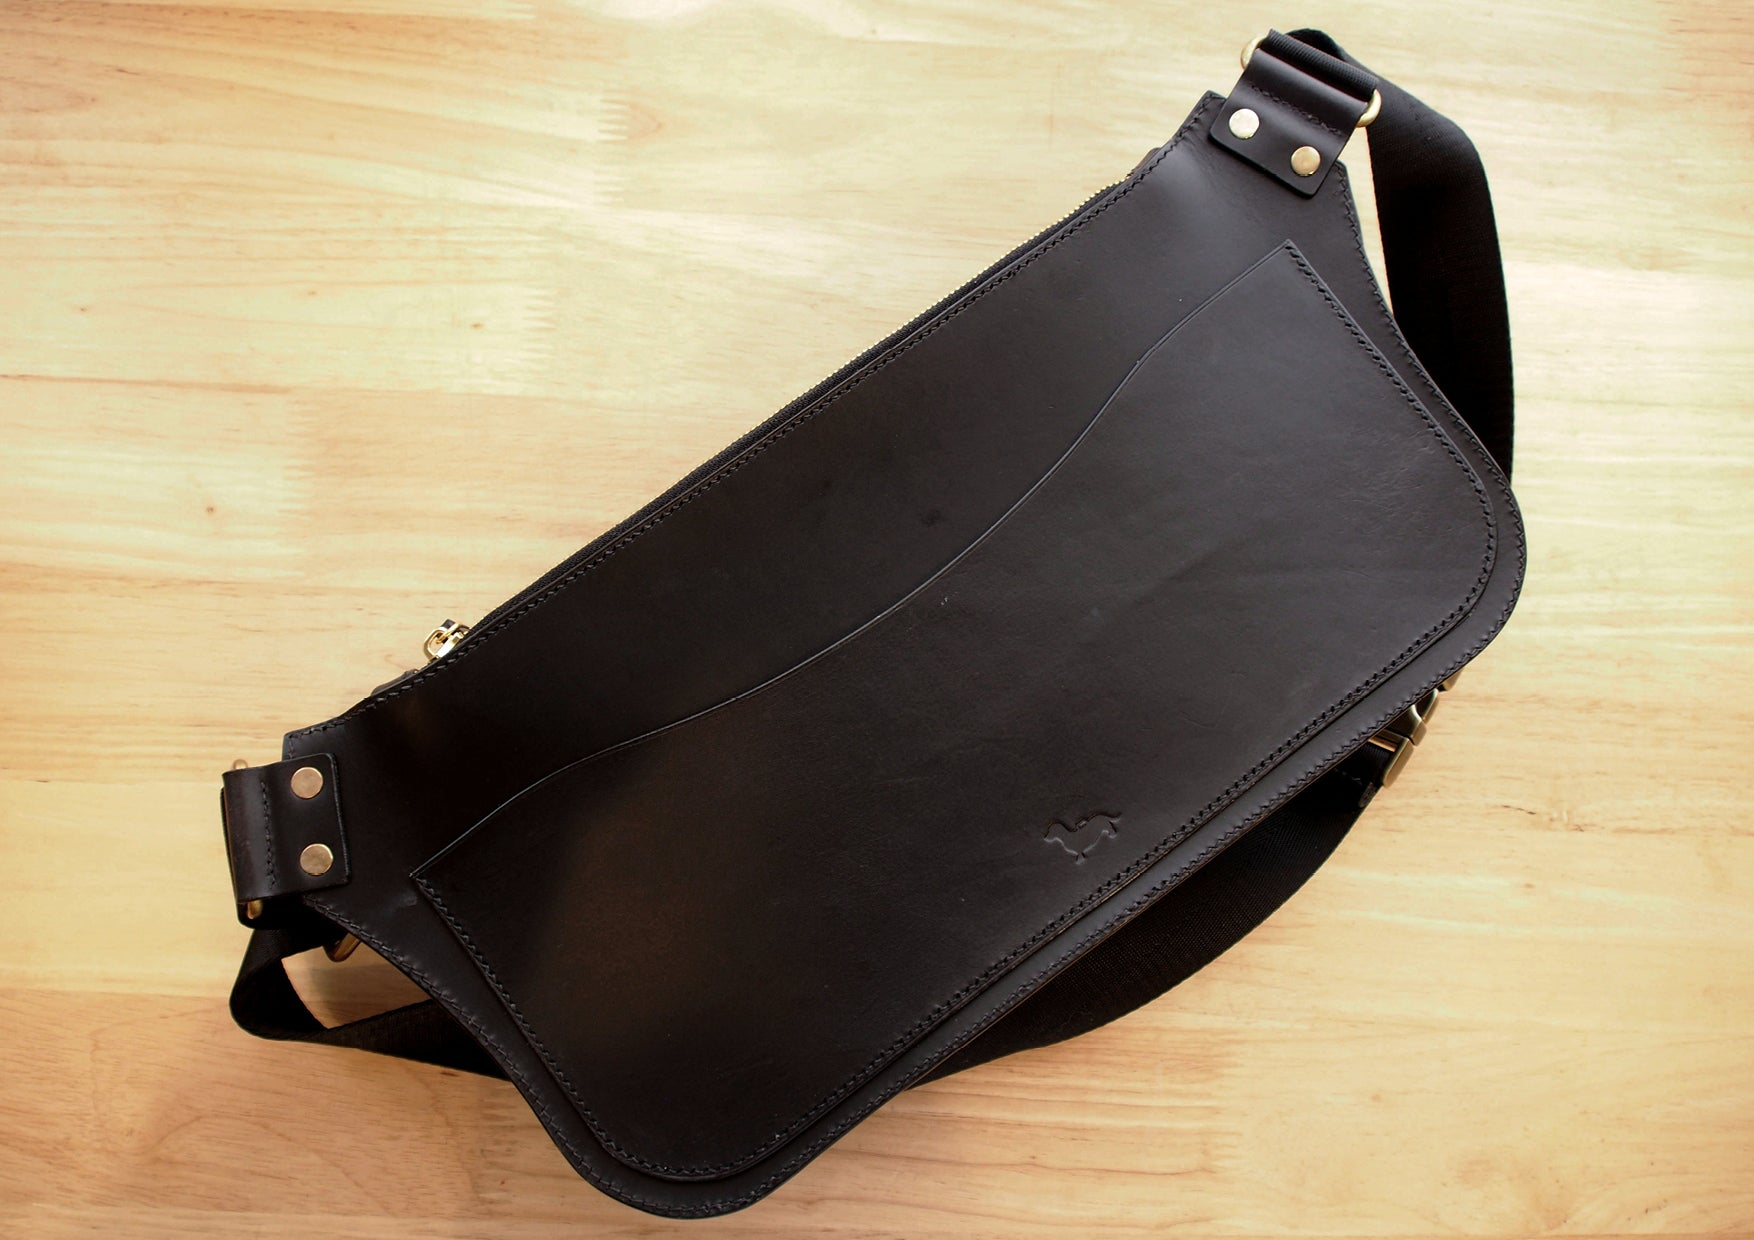 Leather Bum Bag/ Fanny Pack Pattern